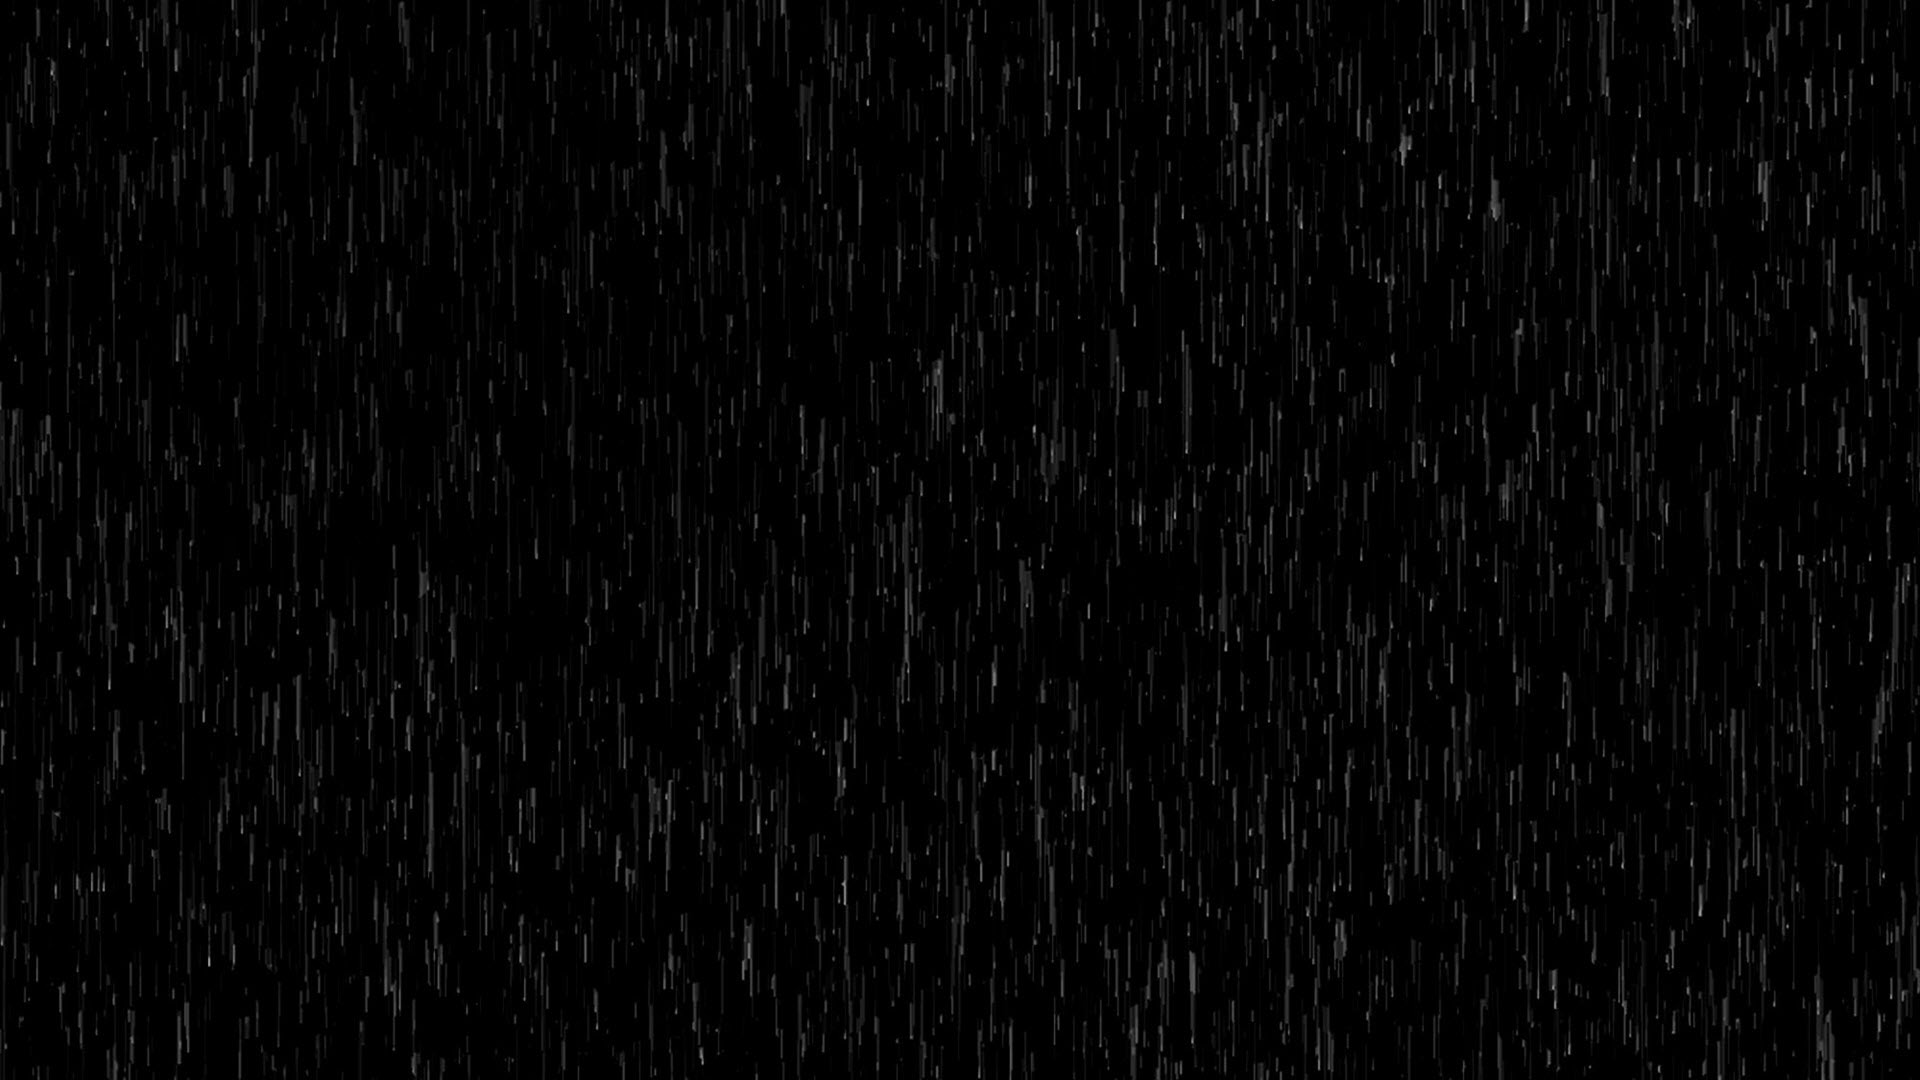 Download FREE Rain Wallpapers - I'm a